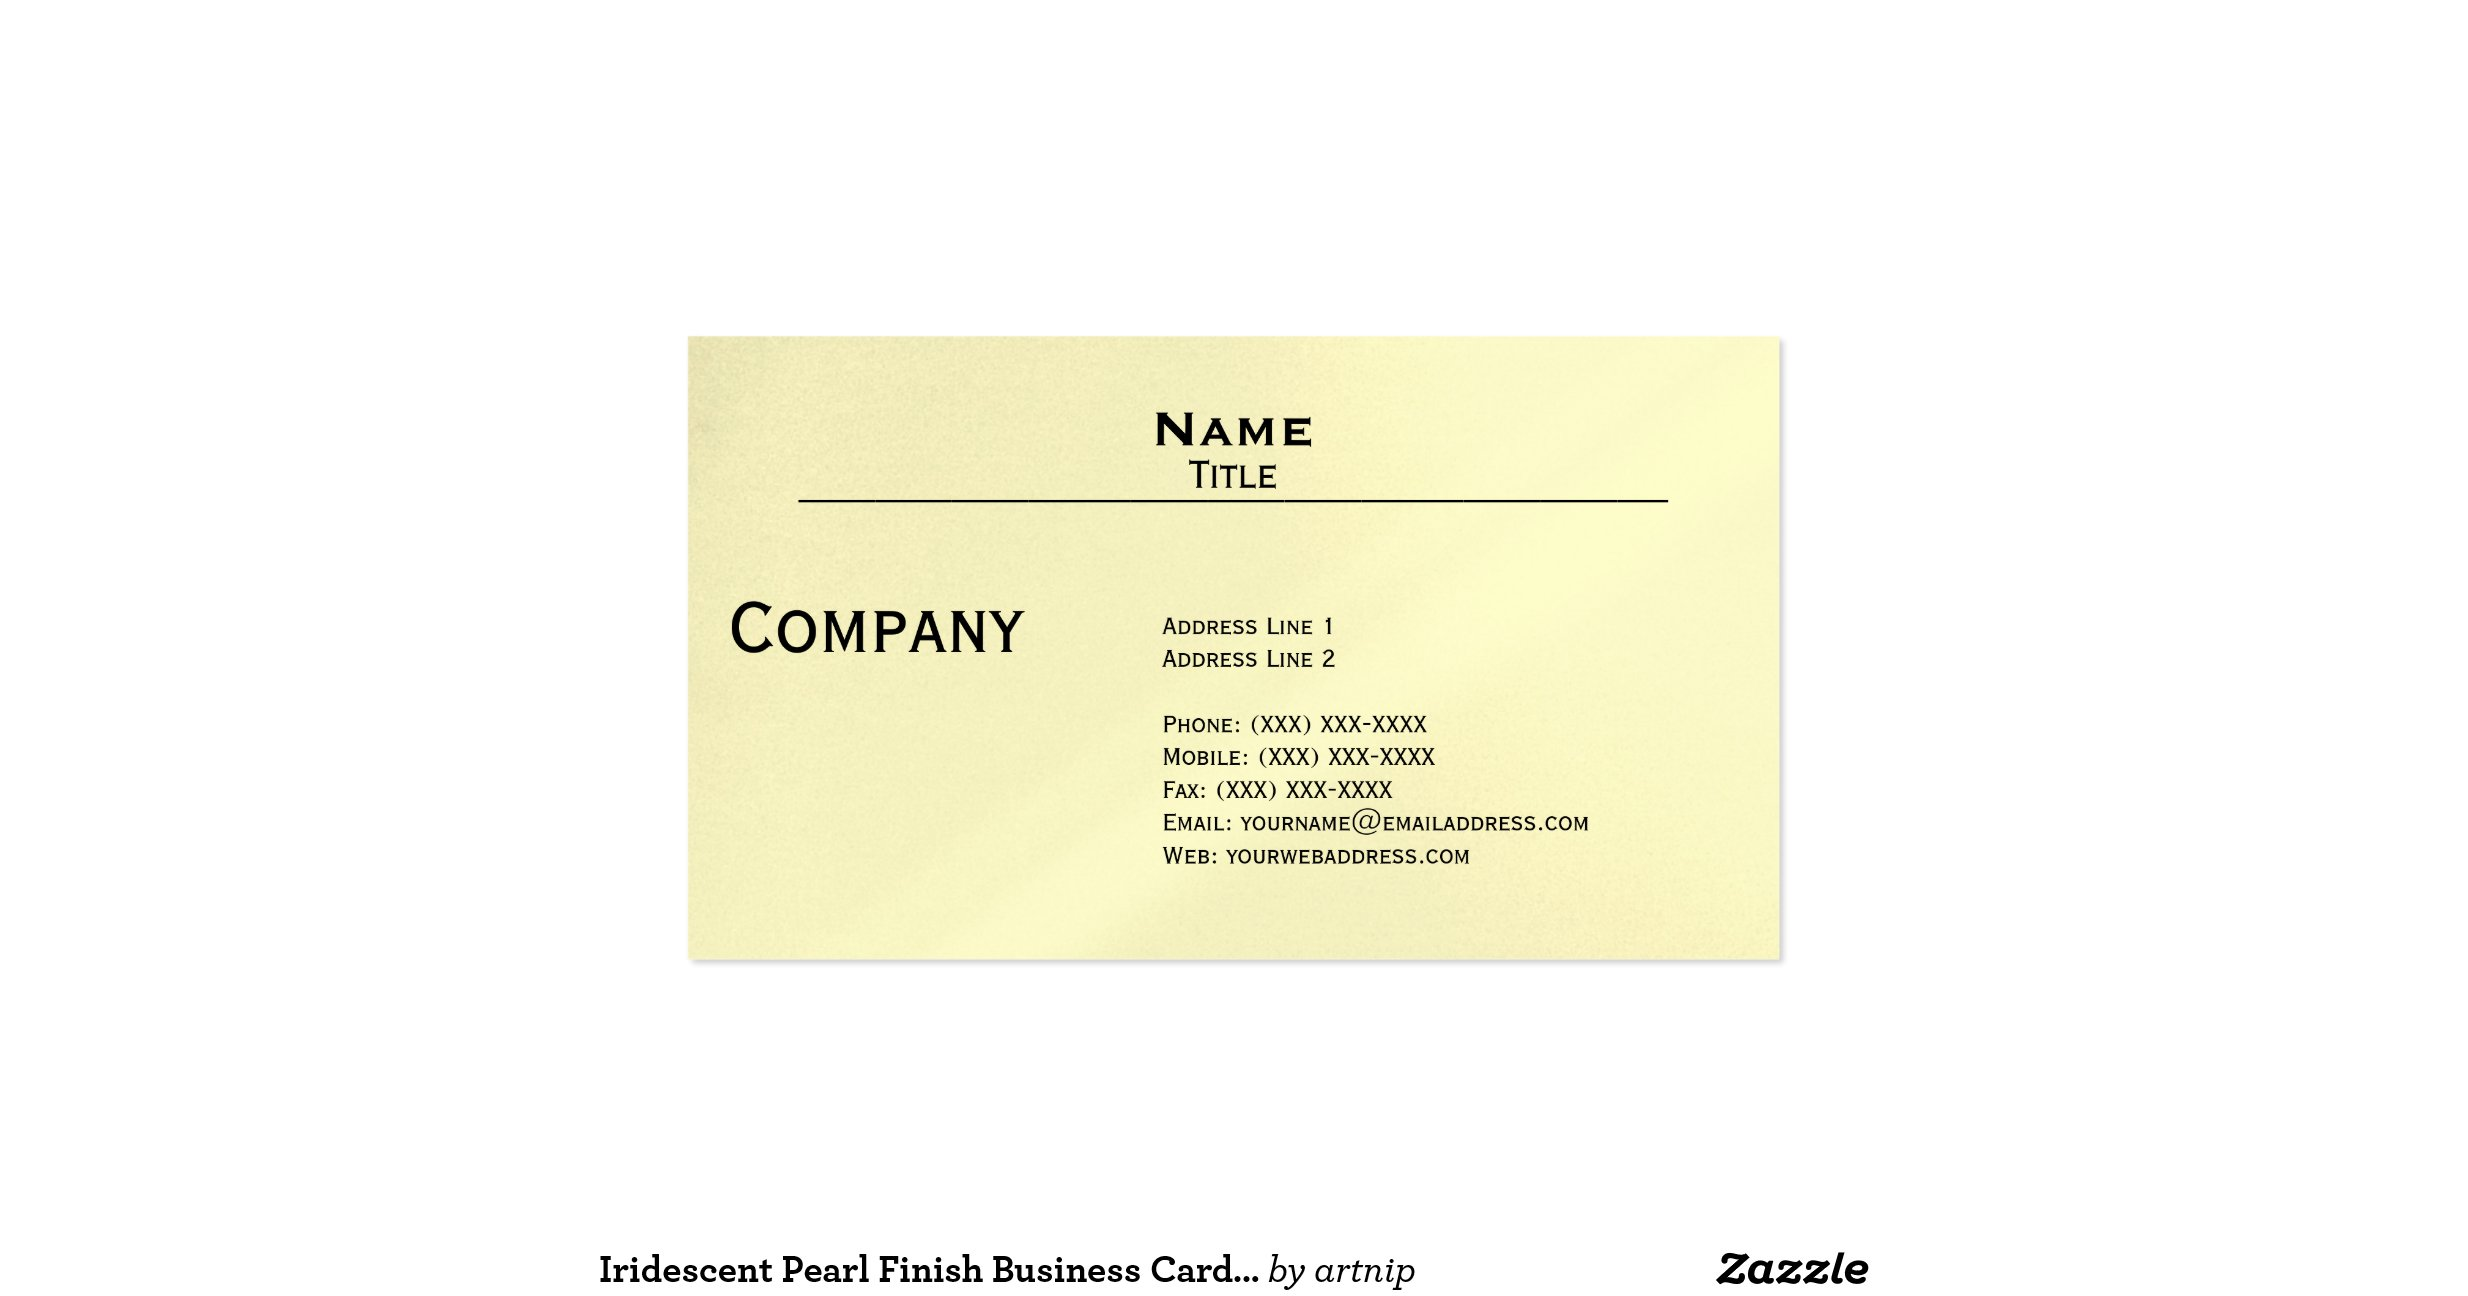 Iridescent pearl finish business card template for Iridescent business cards